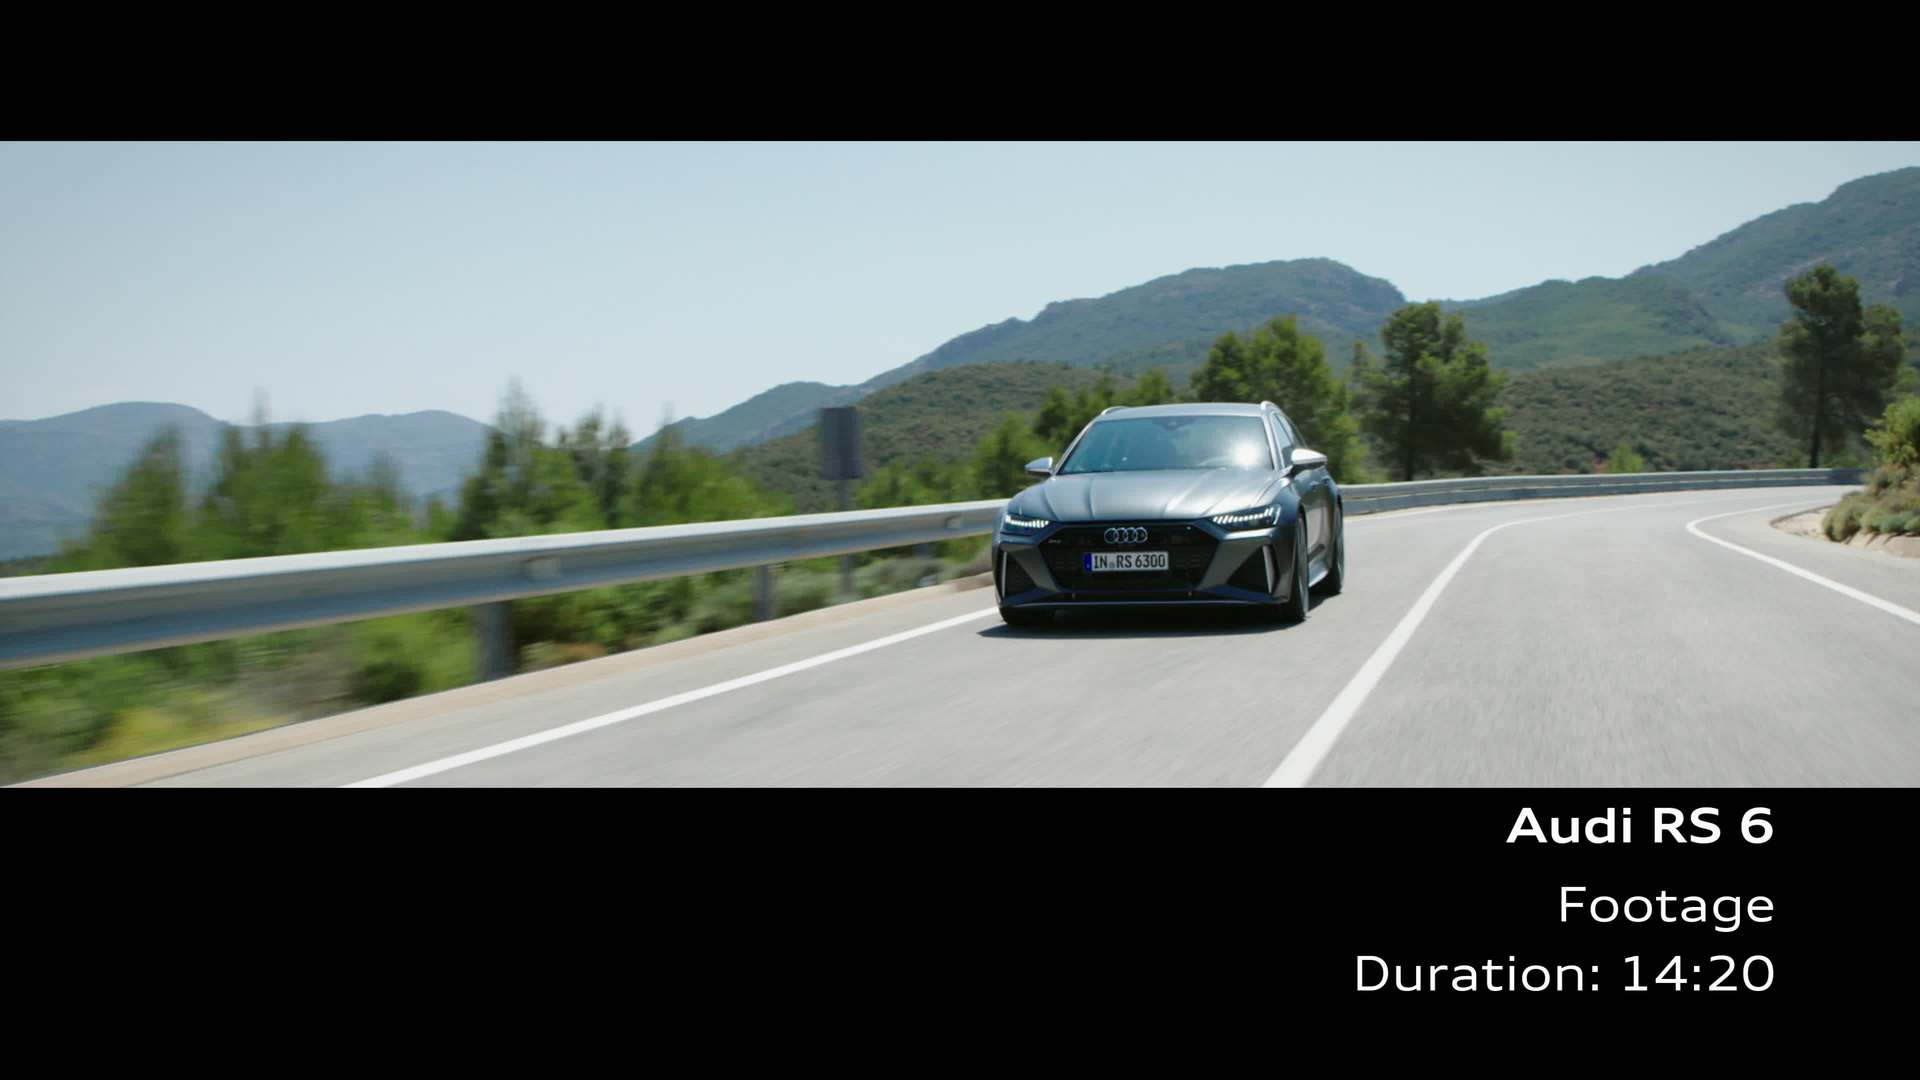 Audi RS 6 Footage dynamic